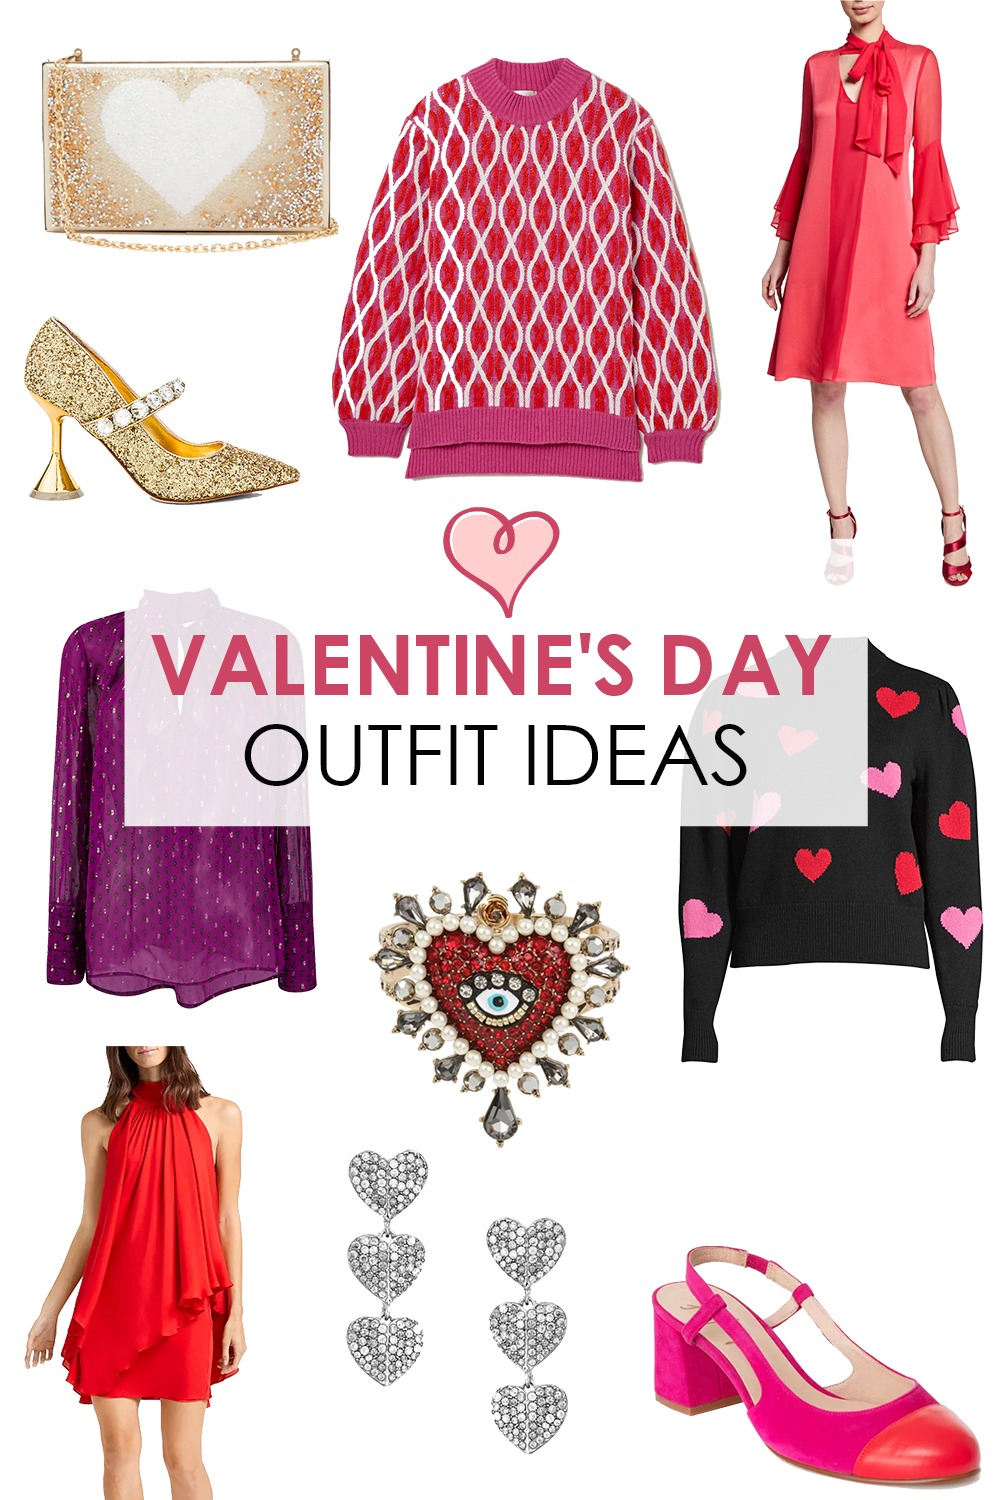 Festive Valentine's Day Outfit Ideas I DreaminLace.com